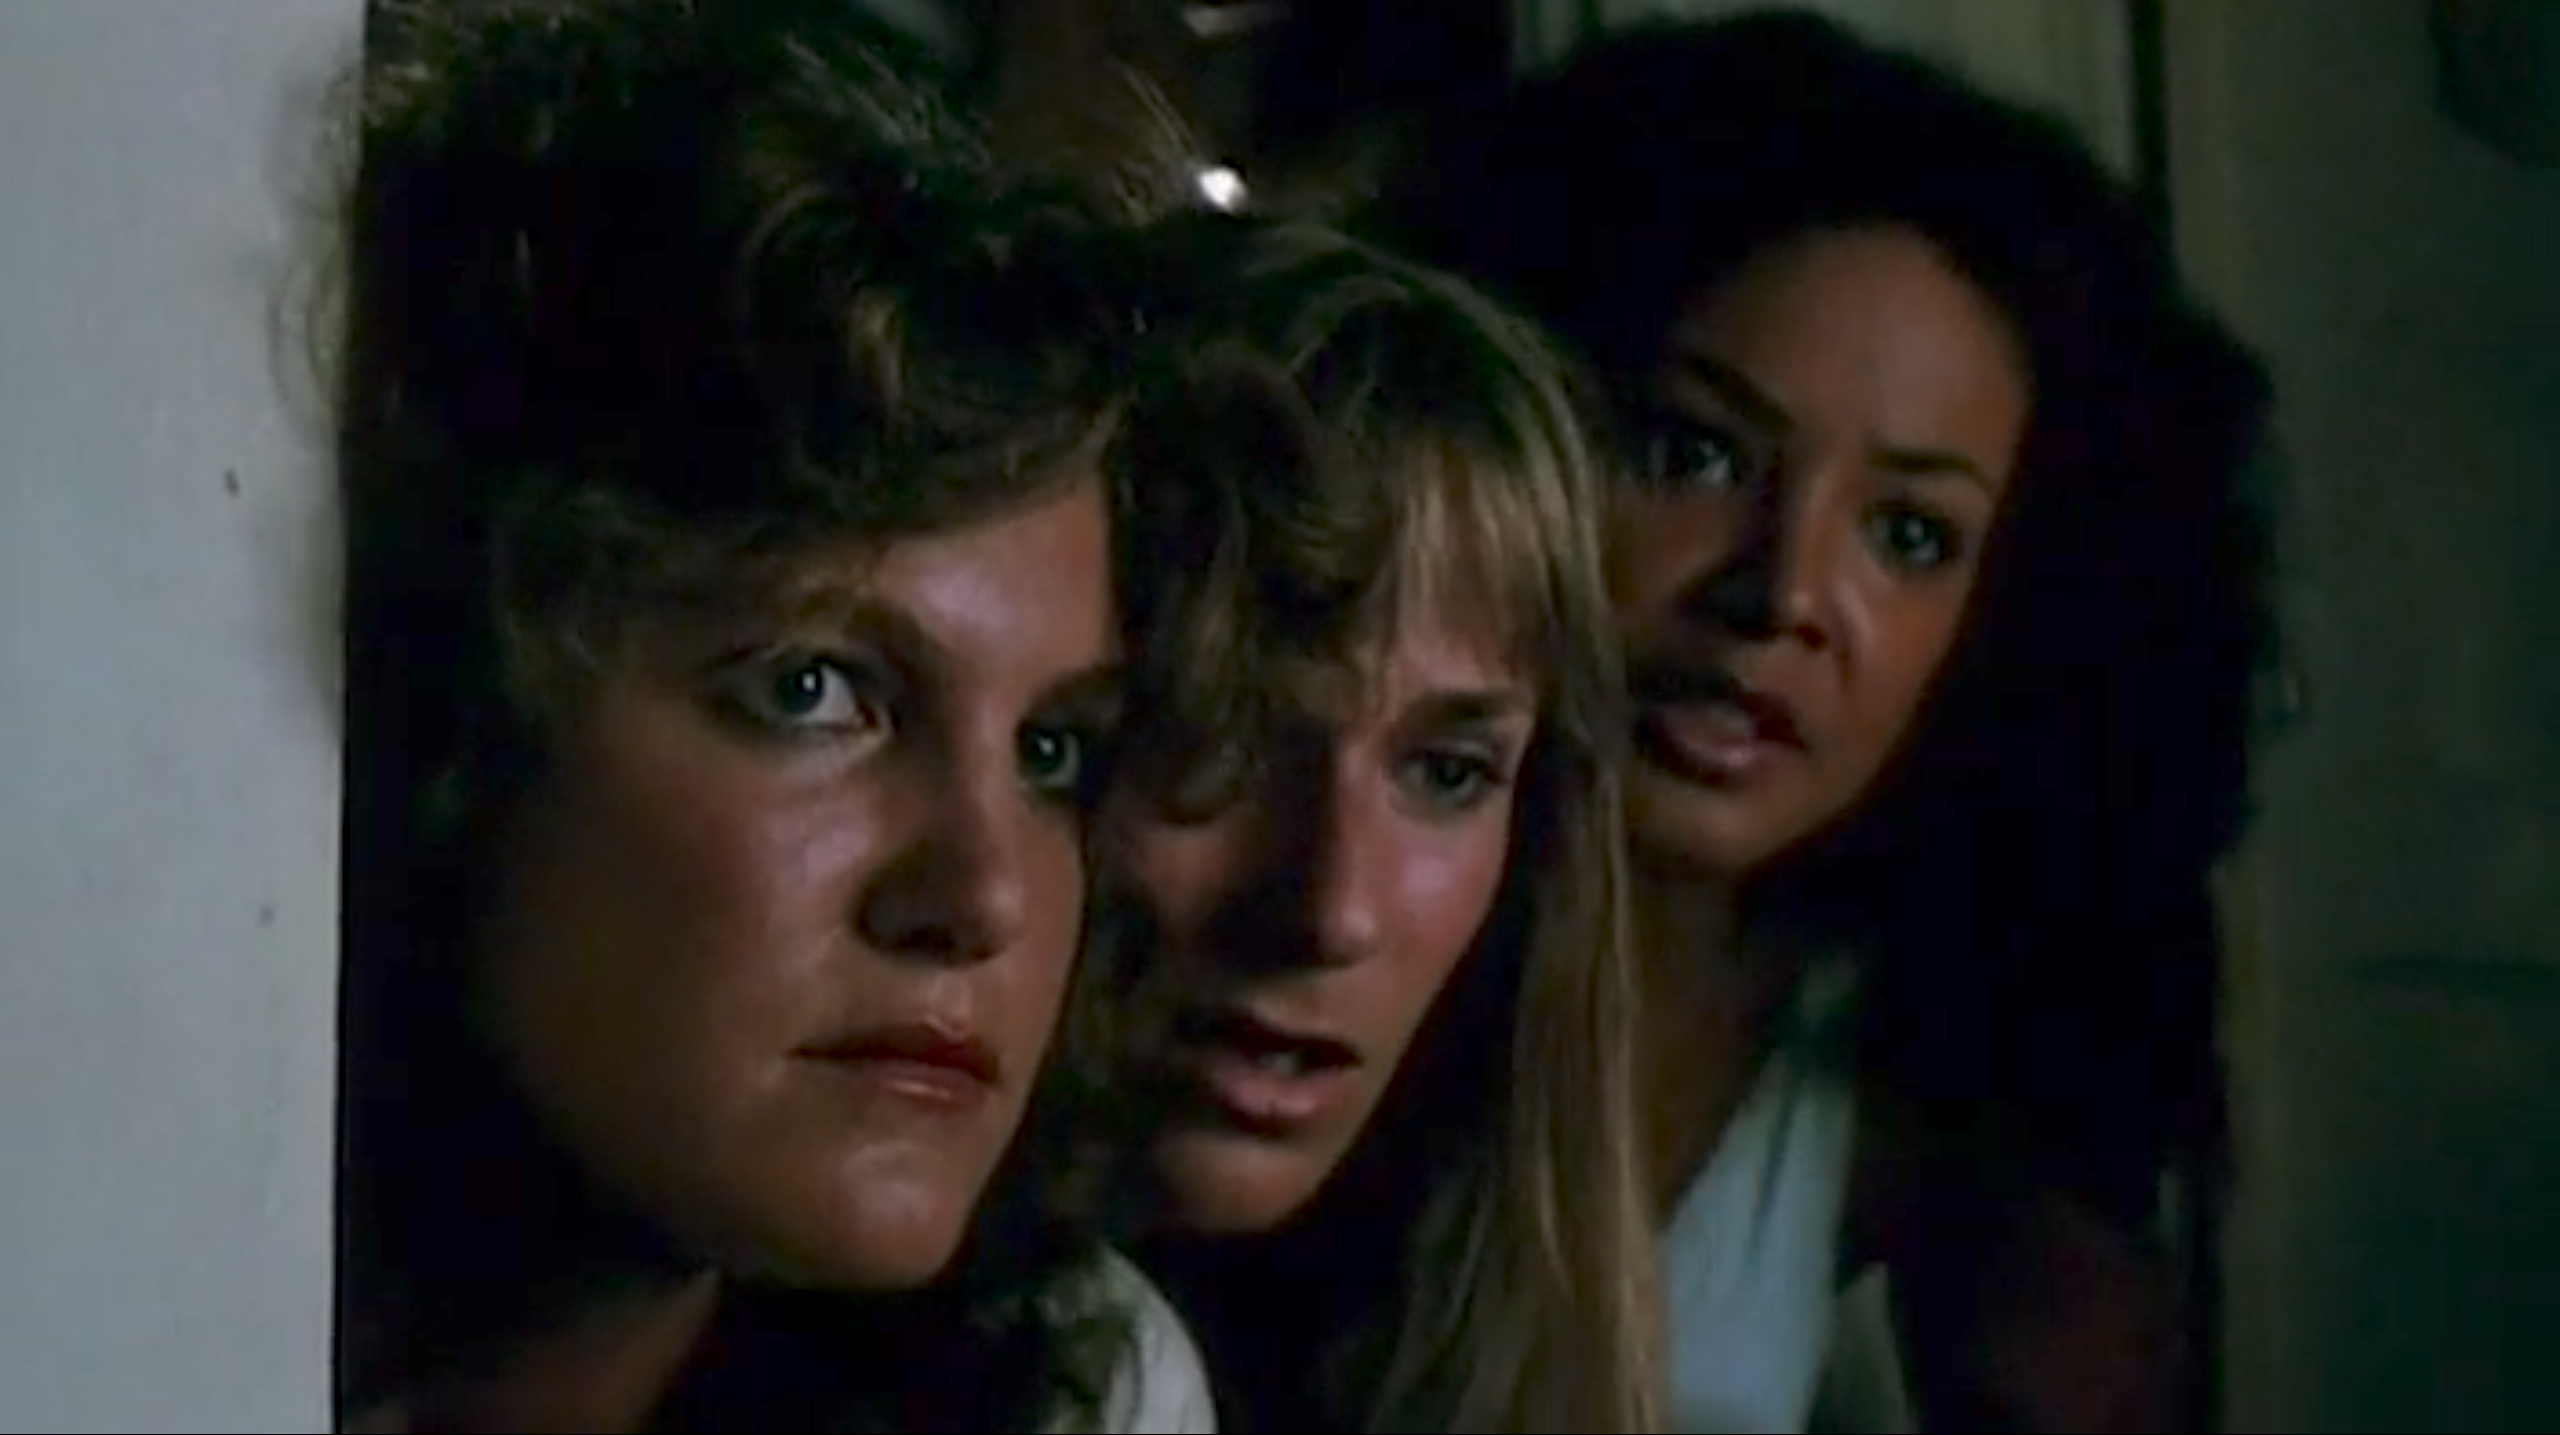 THE SLUMBER PARTY MASSACRE (1982) is a biting, feminist satire of